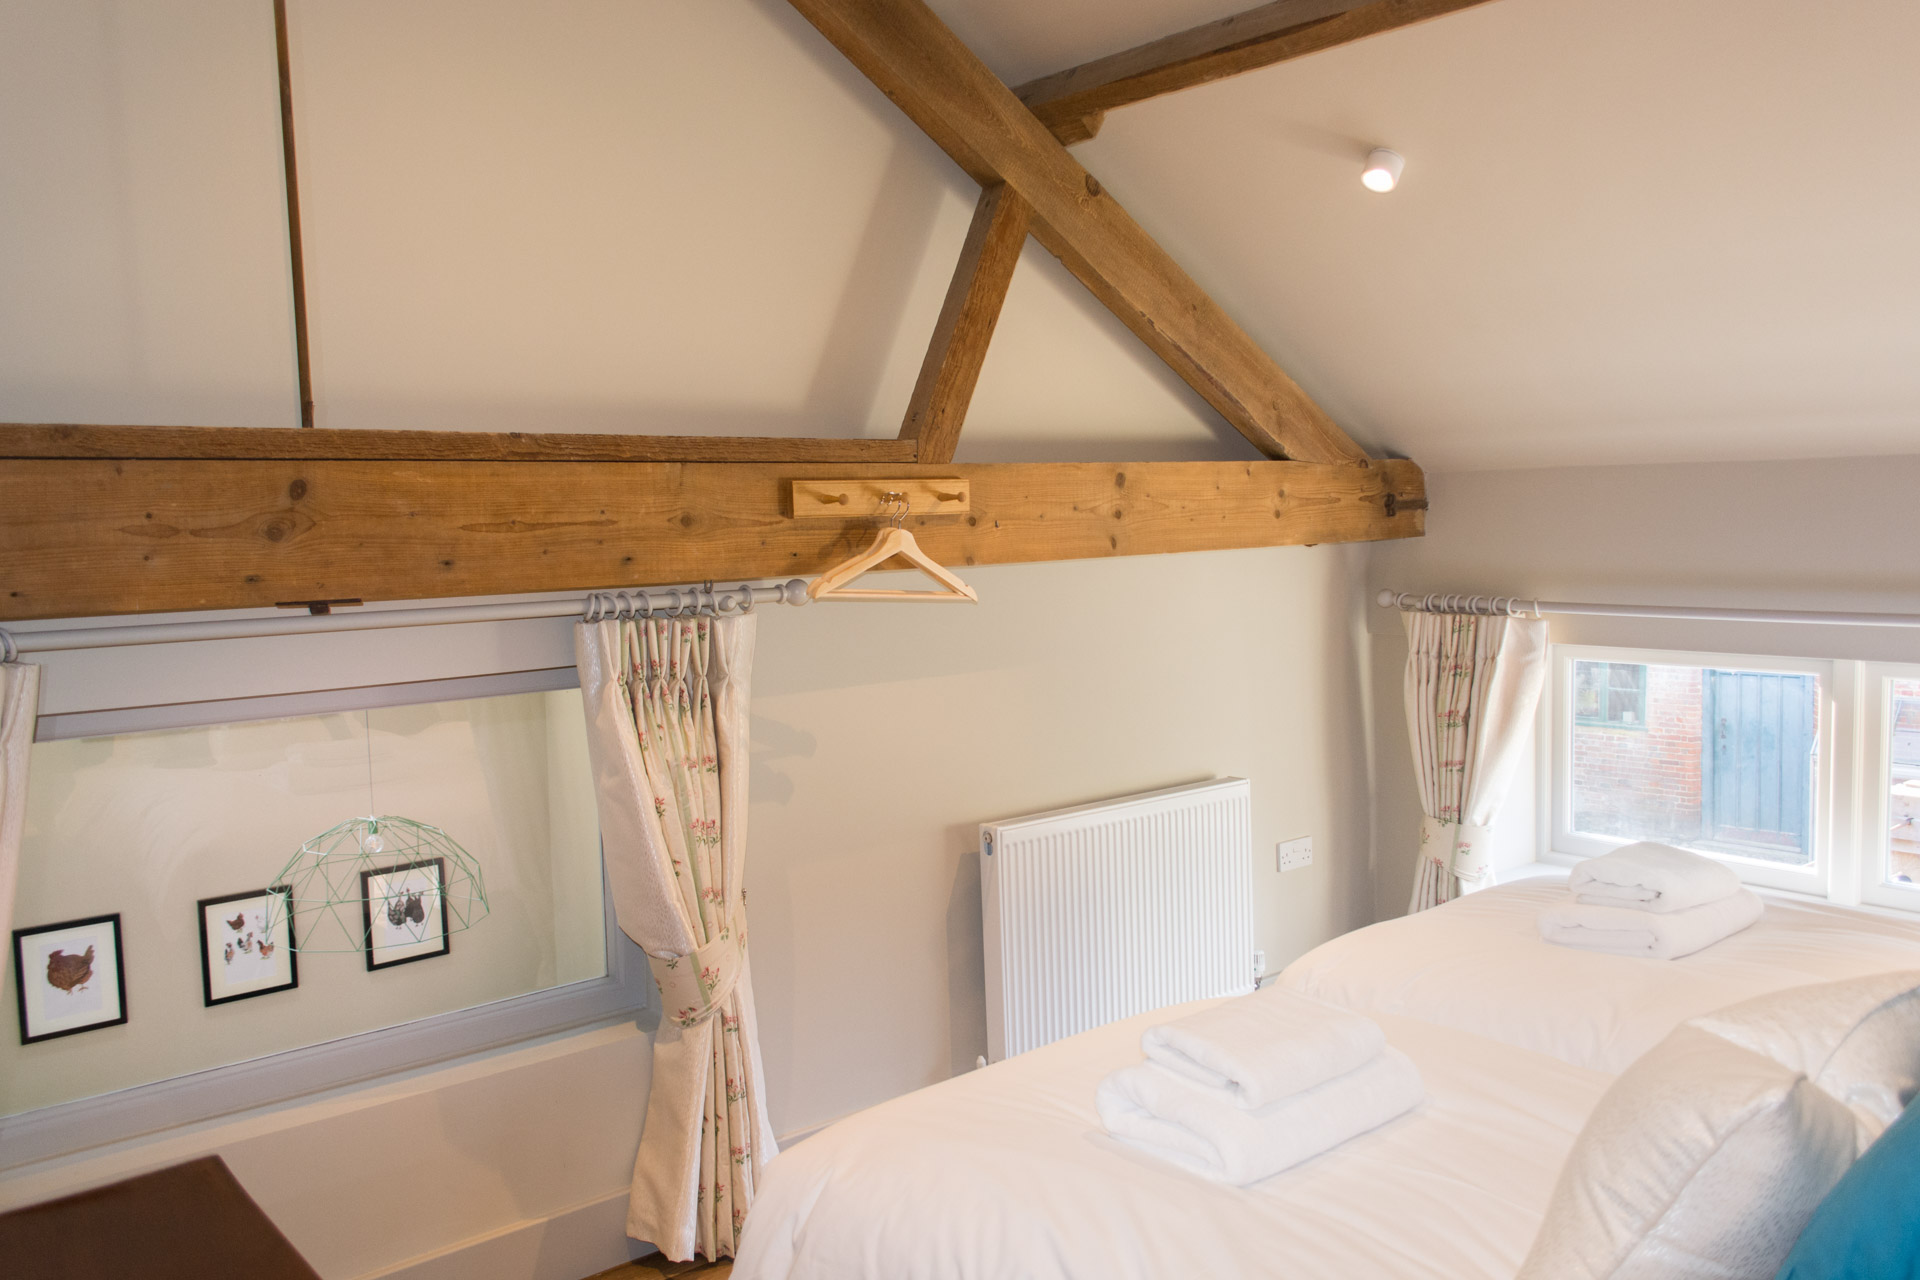 Window and wooden beams in the upstairs twin room of Boathouse Barn.